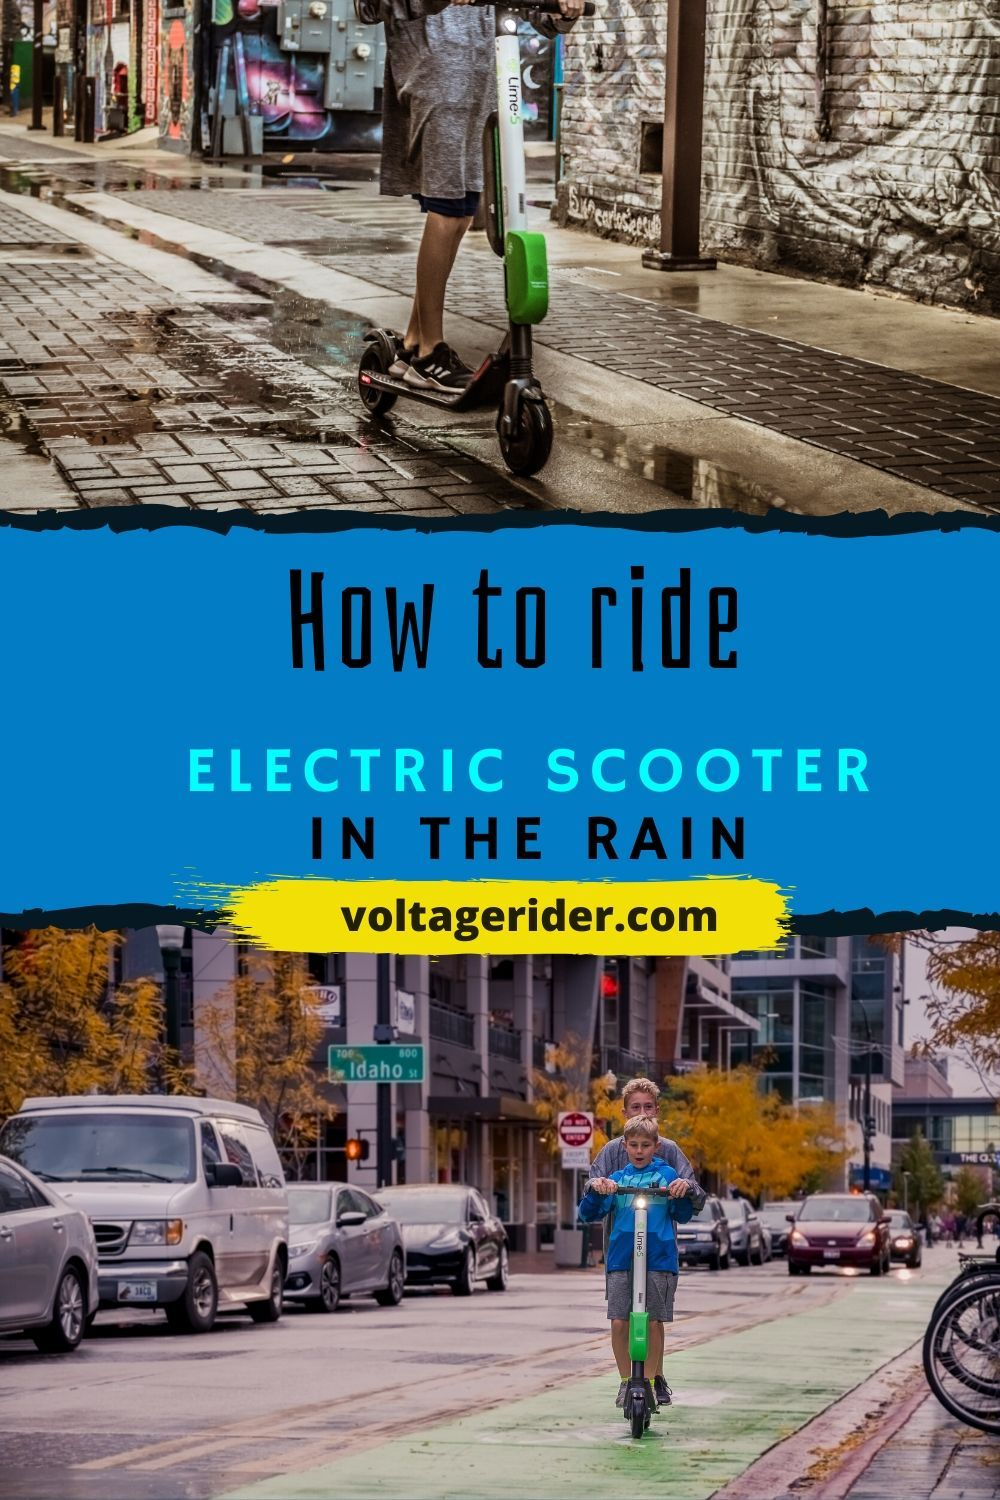 Want to ride your electric scooter in the rain? Or you've been caught in the middle of the rain? Whatever the case might be, I'll show you how to ride electric scooter in the rain without ruining your escooter. Take a look here!  #electricscooter #escooter #escooters #electricscooters #electricscooterrain #escooterrain #escootertips #voltagerider #escootersharing #escooteradvice #urbanmobility